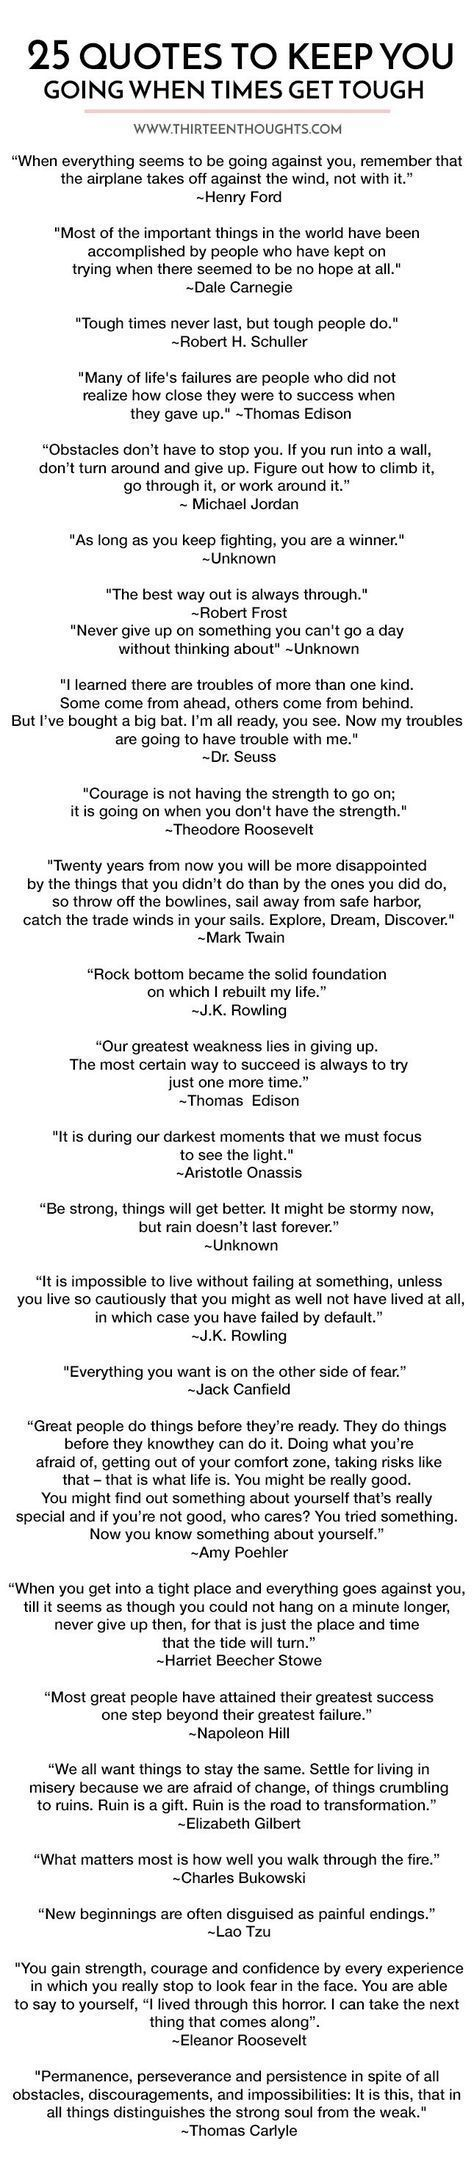 Quotes to keep you going